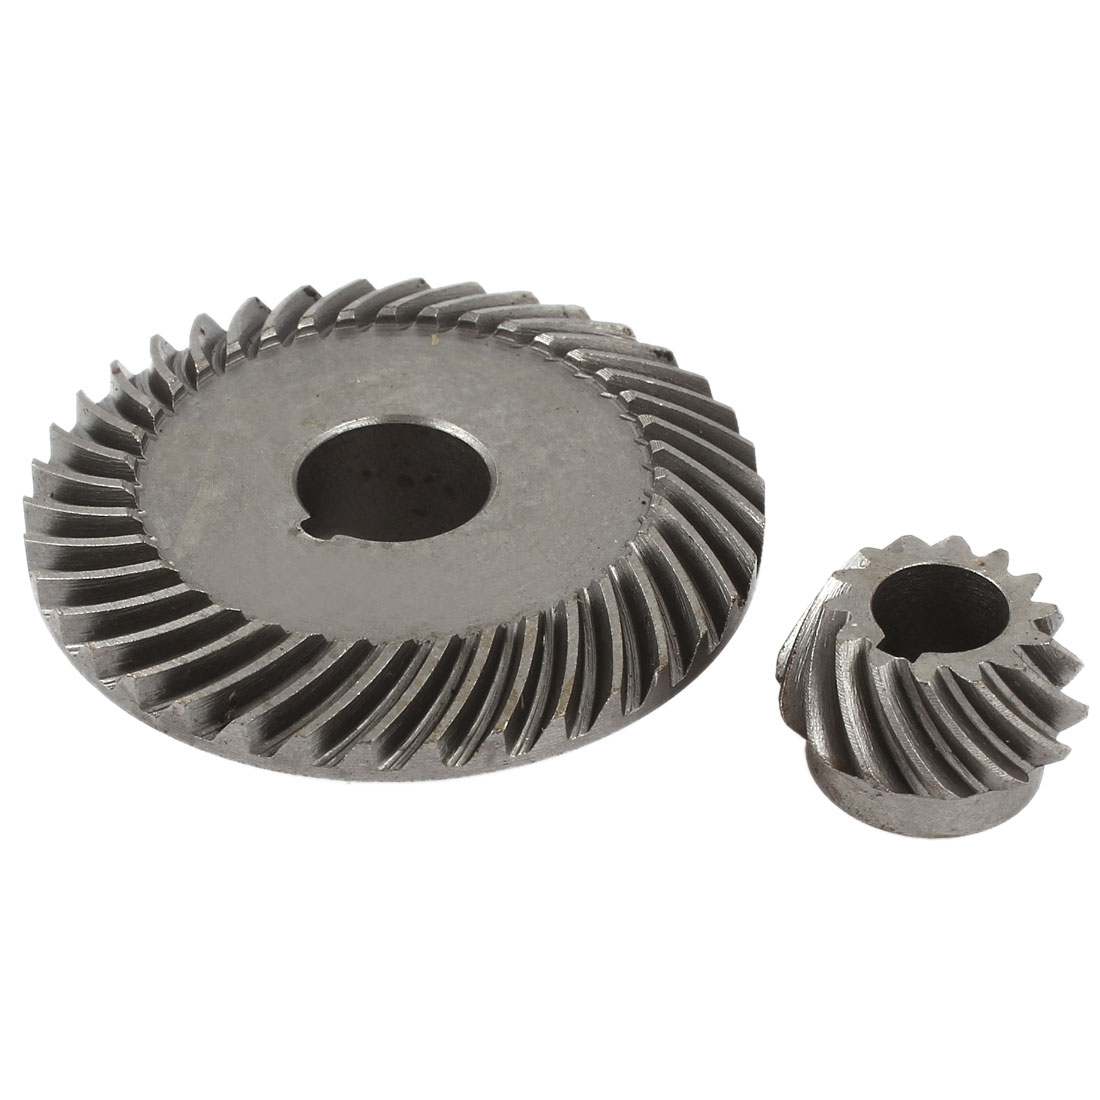 10mm 15mm Electric Power Tool Spiral Bevel Gear Set for Hitachi 180 Angle Grinder